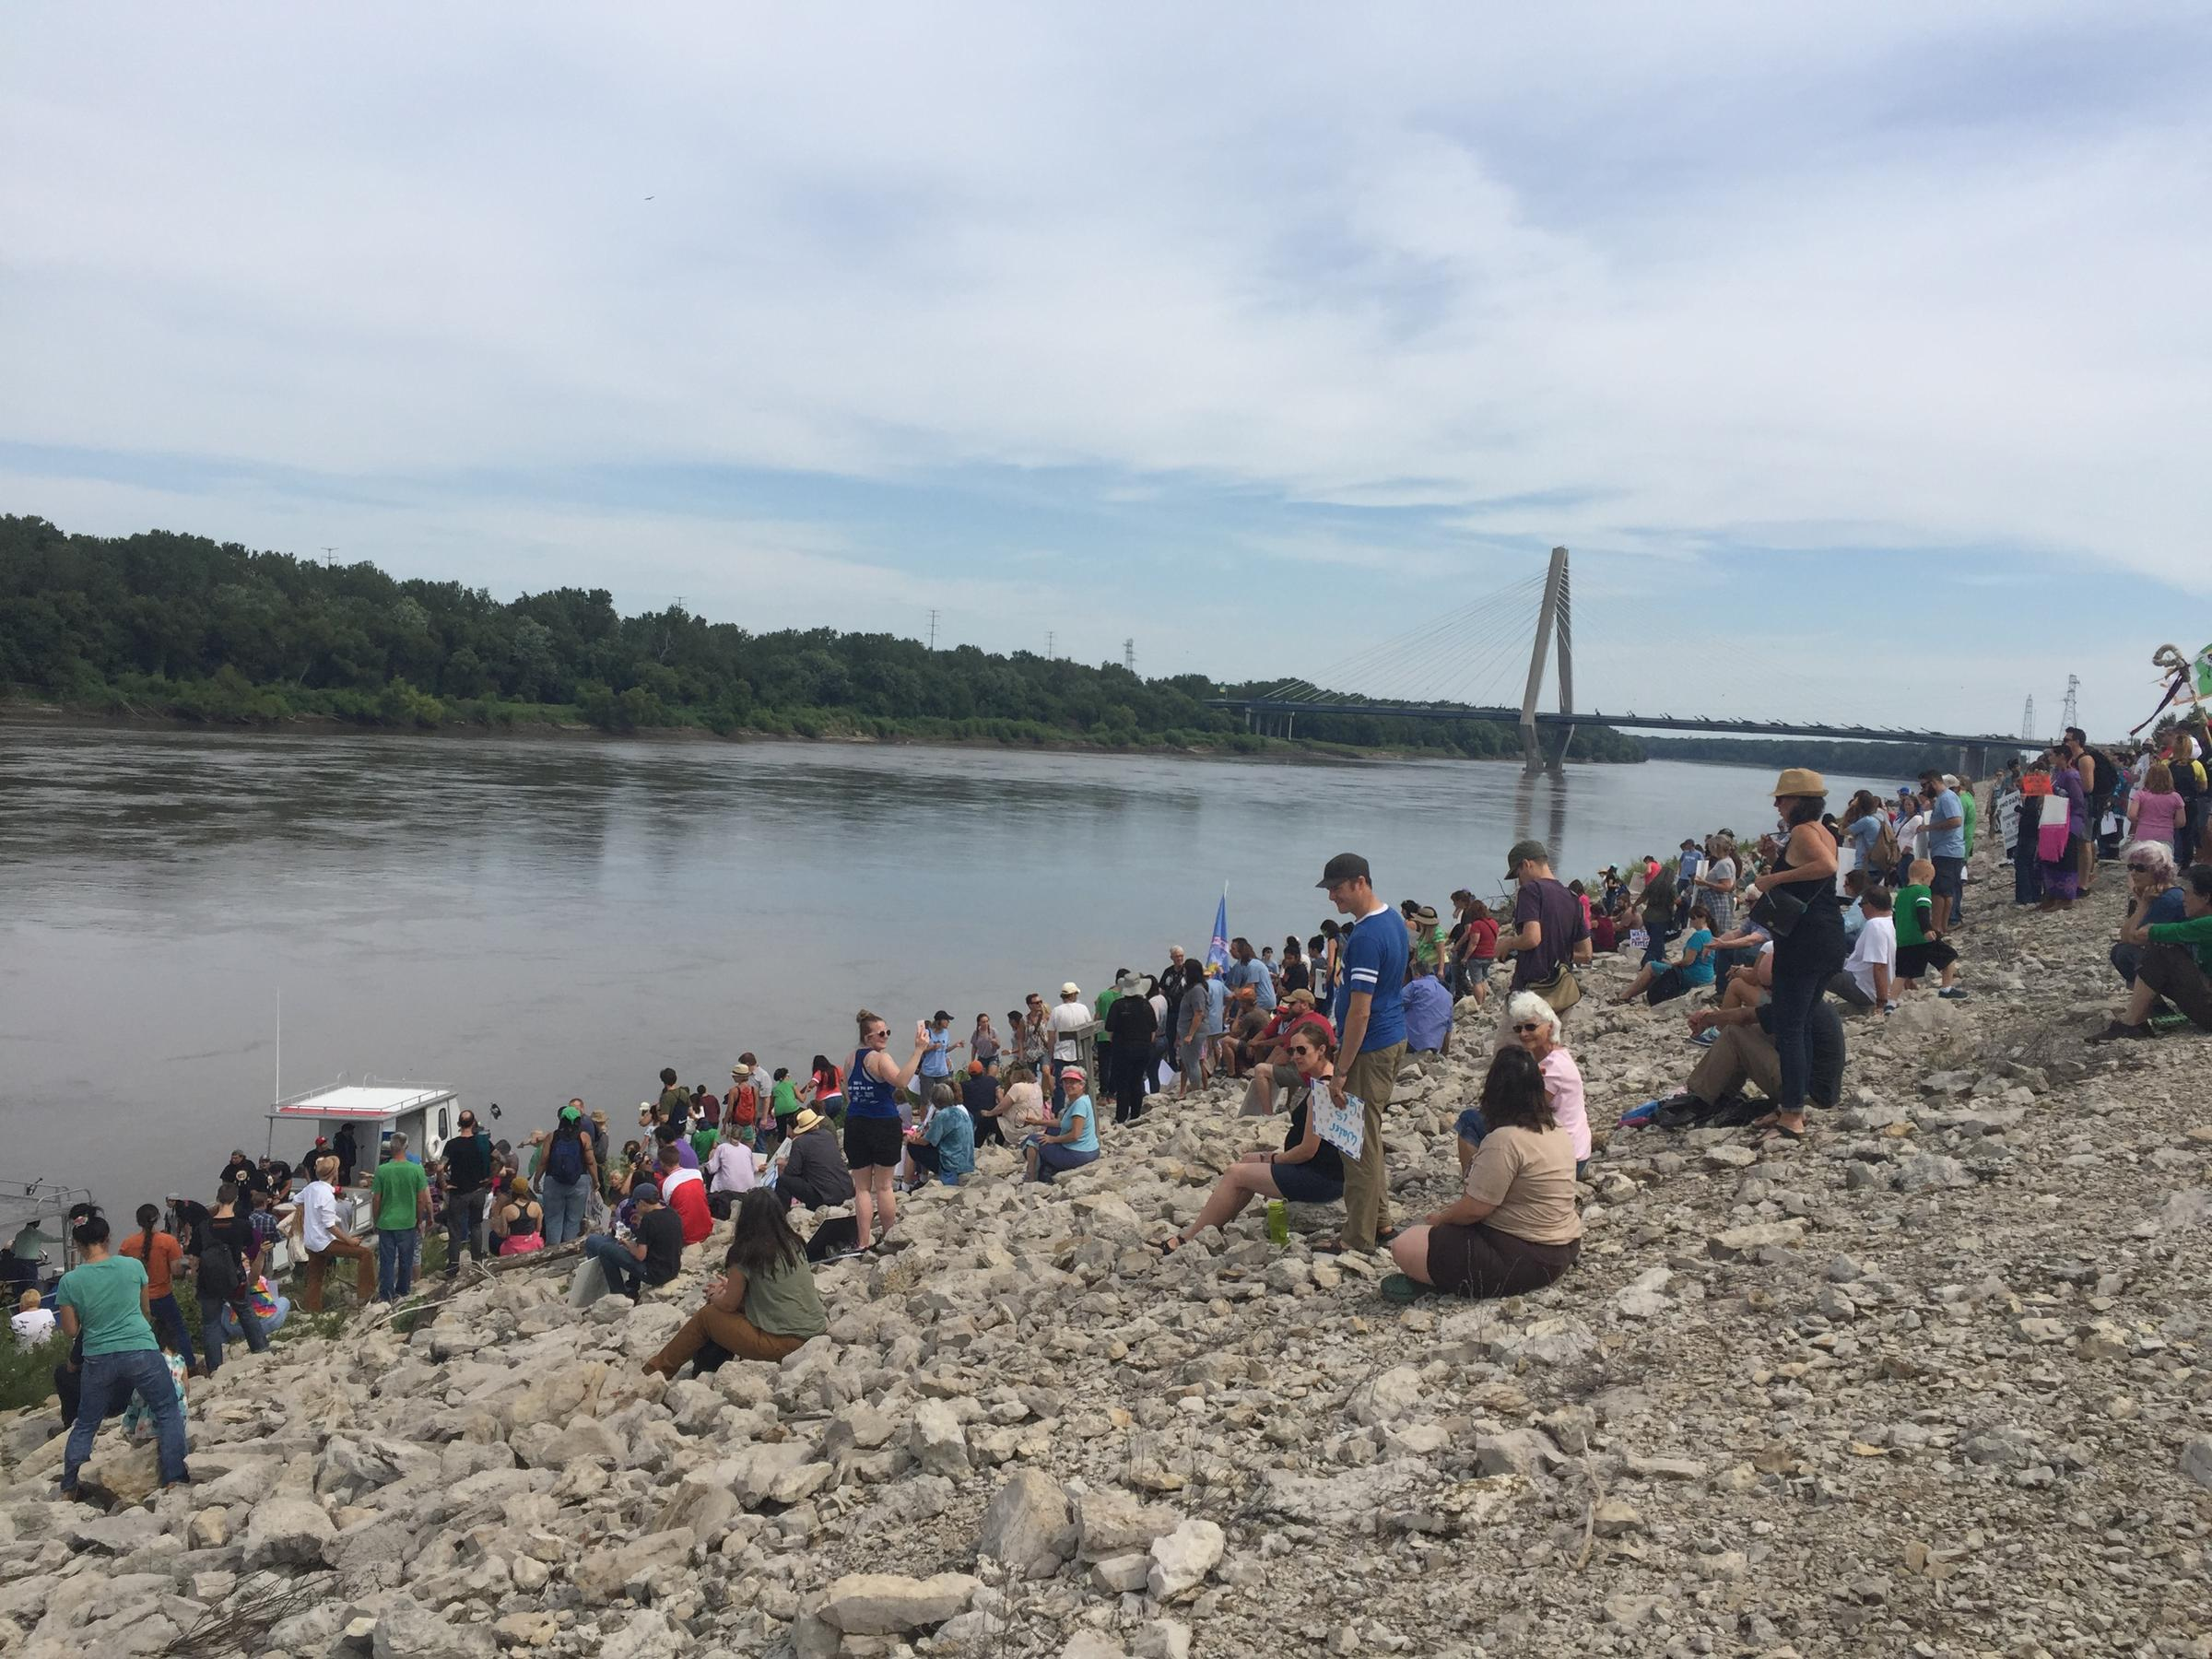 along the banks of the missouri river hundreds protest the dakota protesters assembled on the banks of the missouri river on sunday in protest of the dakota access pipeline